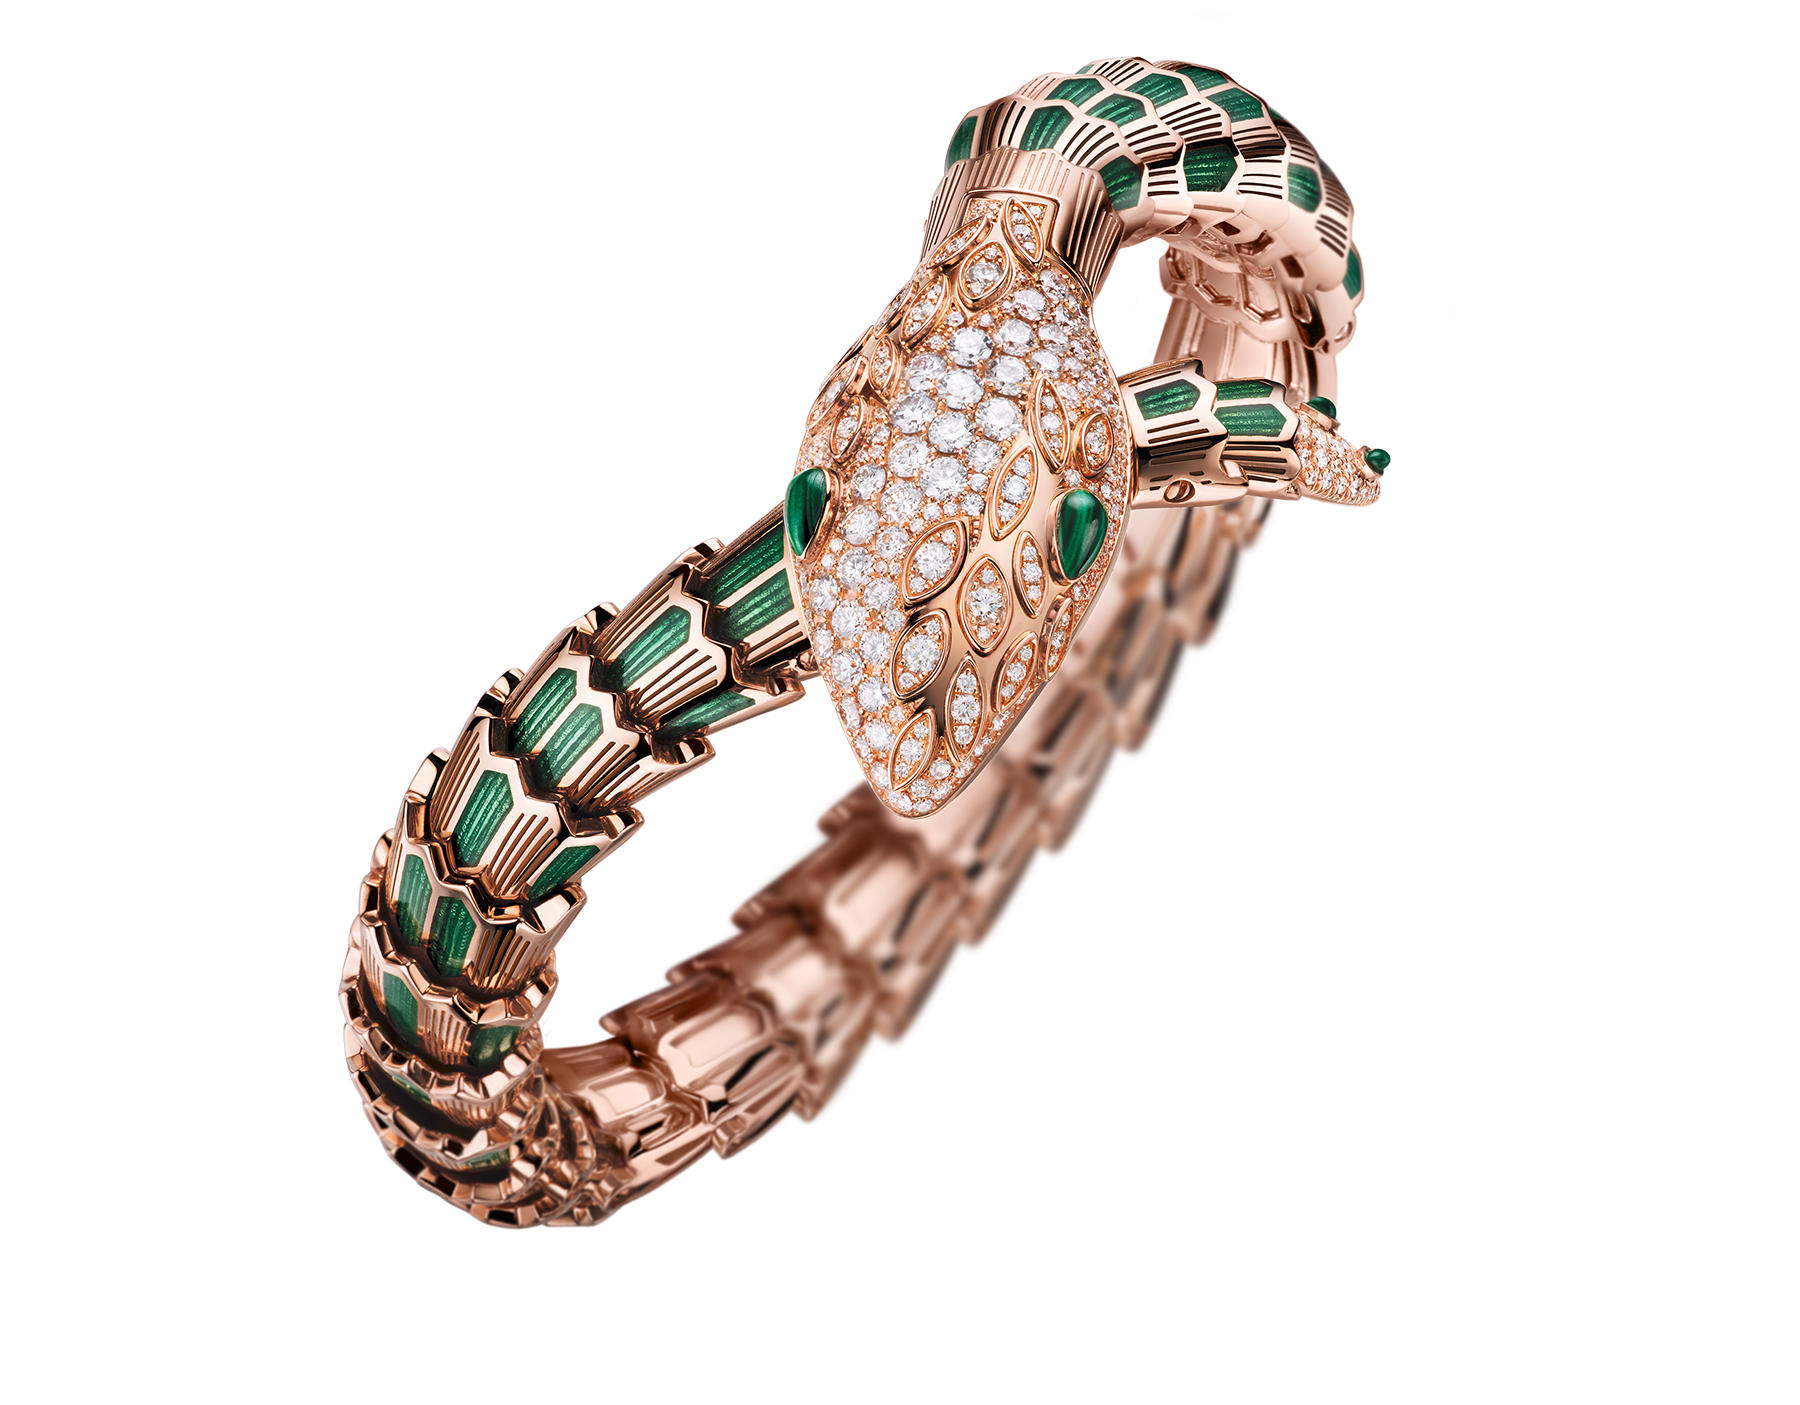 Serpenti Secret Watch with 18 kt rose gold head set with brilliant cut diamonds and malachite eyes, 18 kt rose gold case, 18 kt rose gold dial and single spiral bracelet, both set with brilliant cut diamonds, malachites and green enamel. 102240 image 2